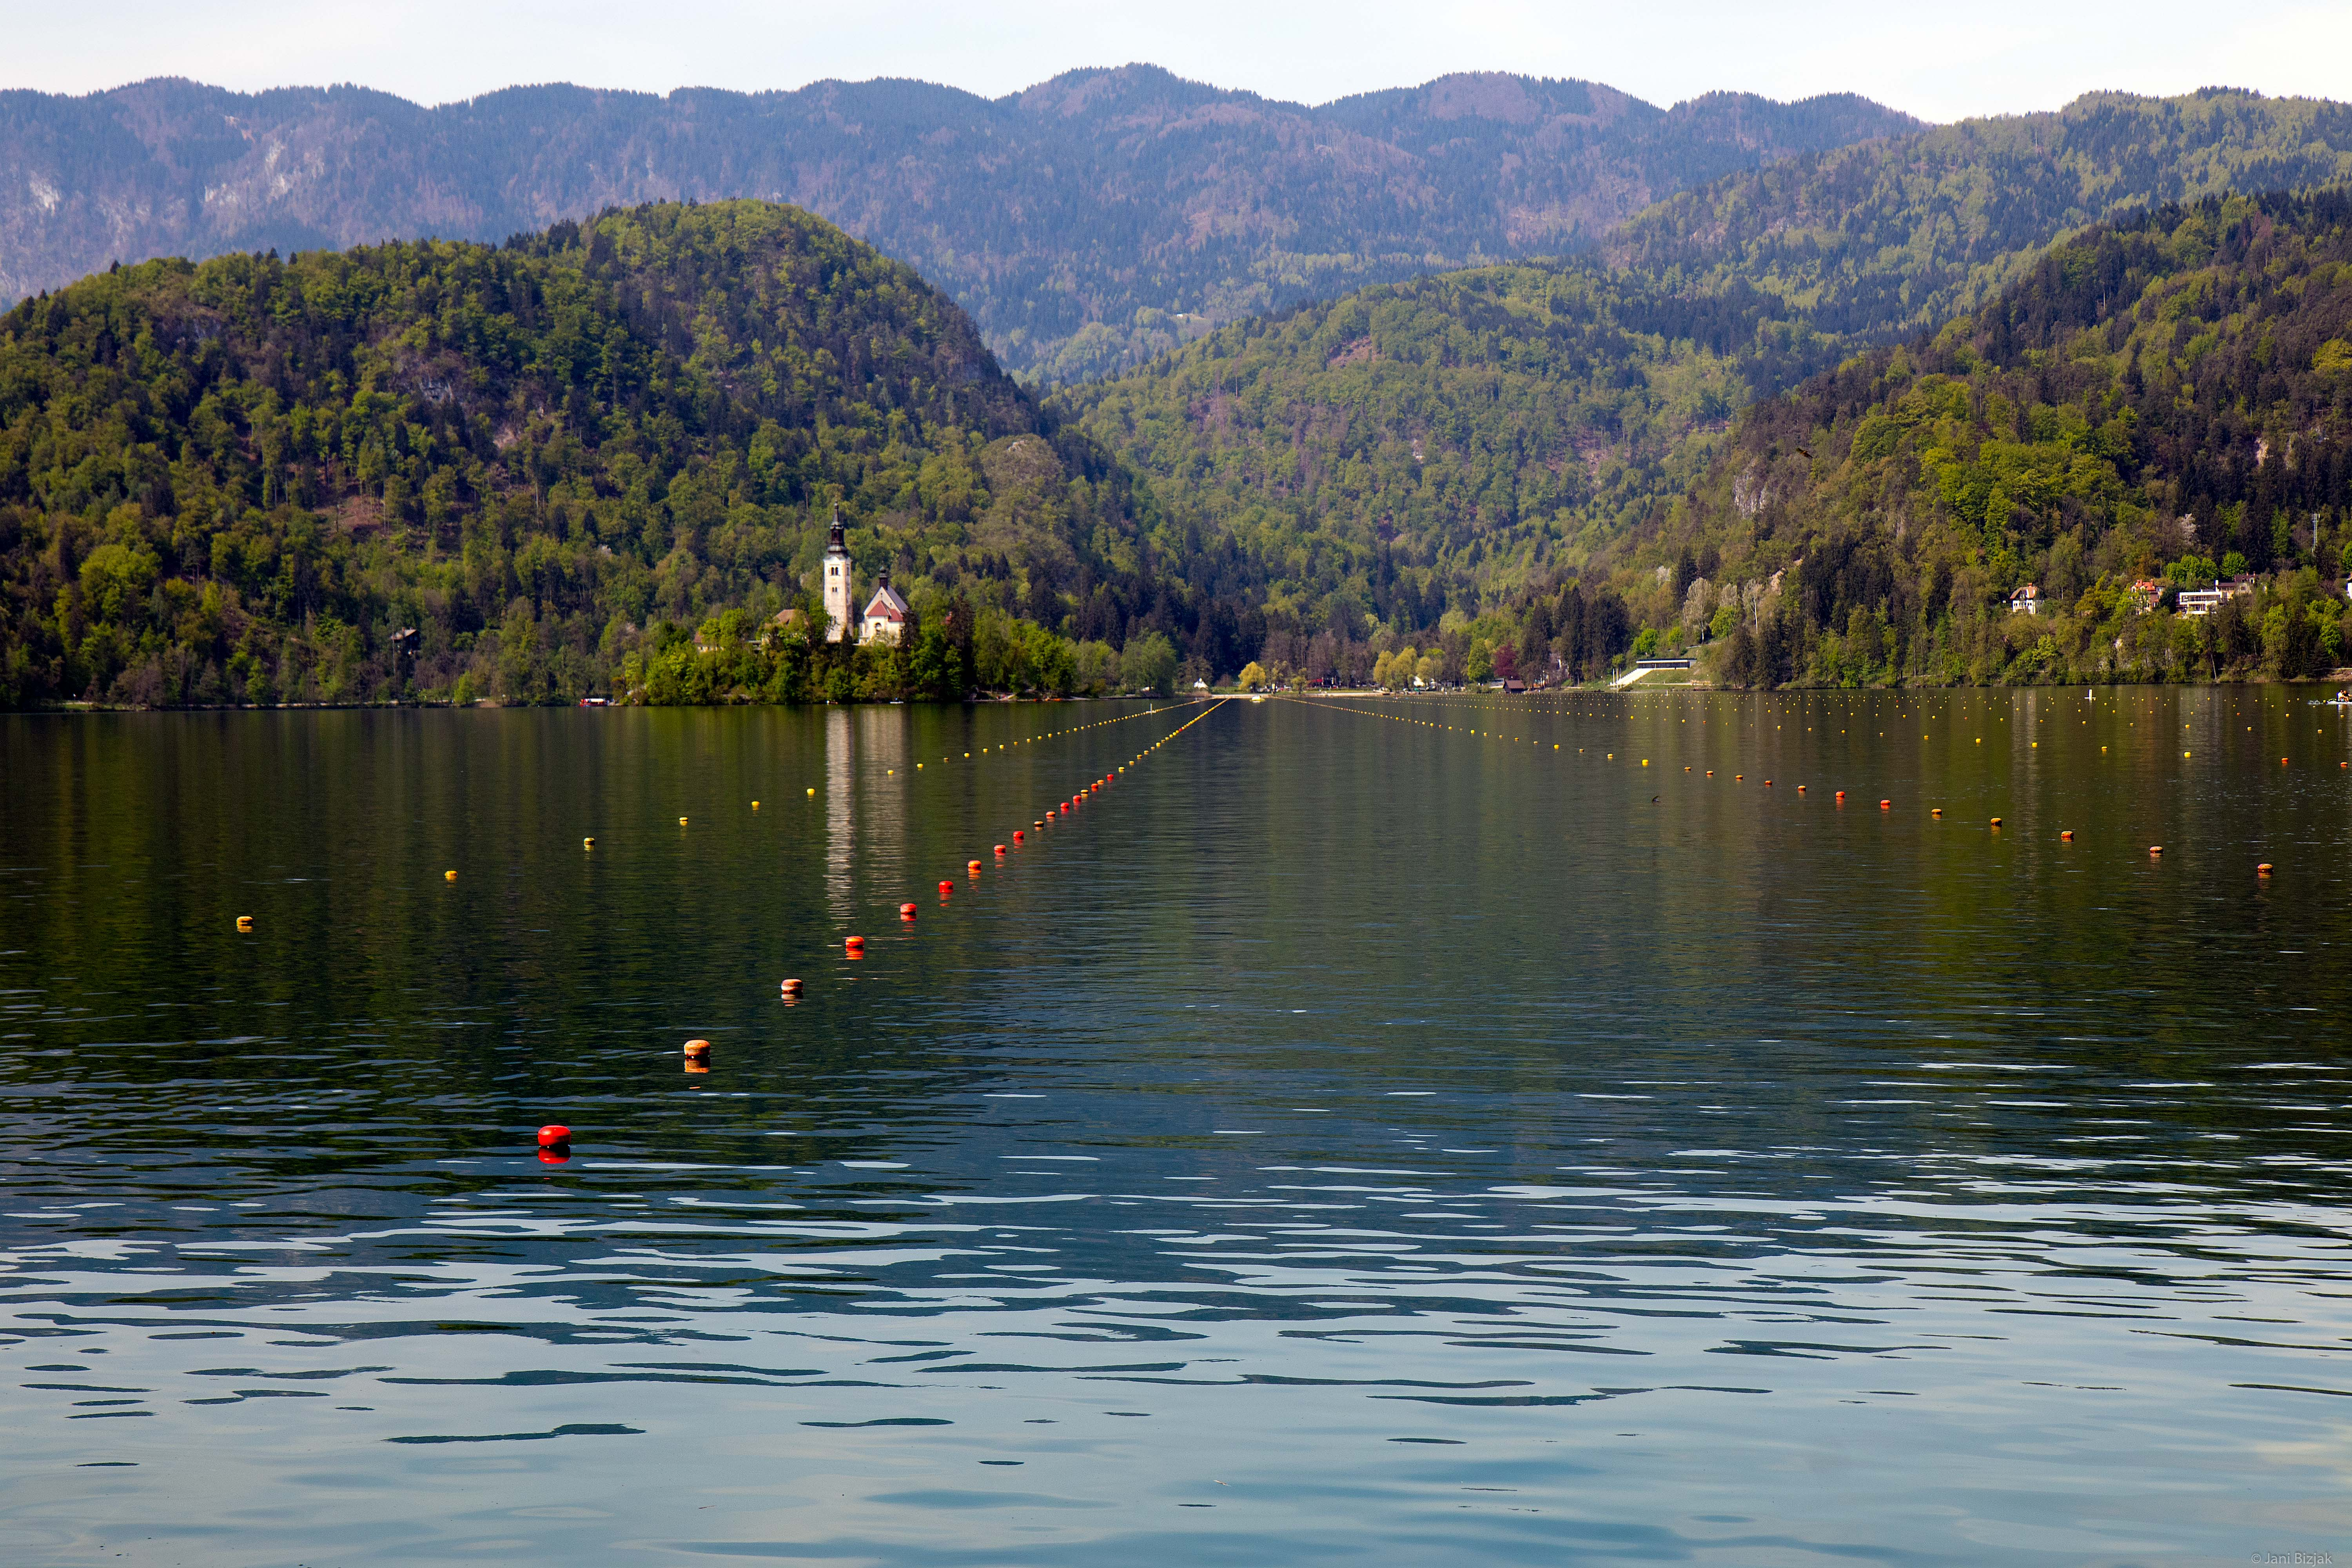 Lake Bled with an island in the middle.